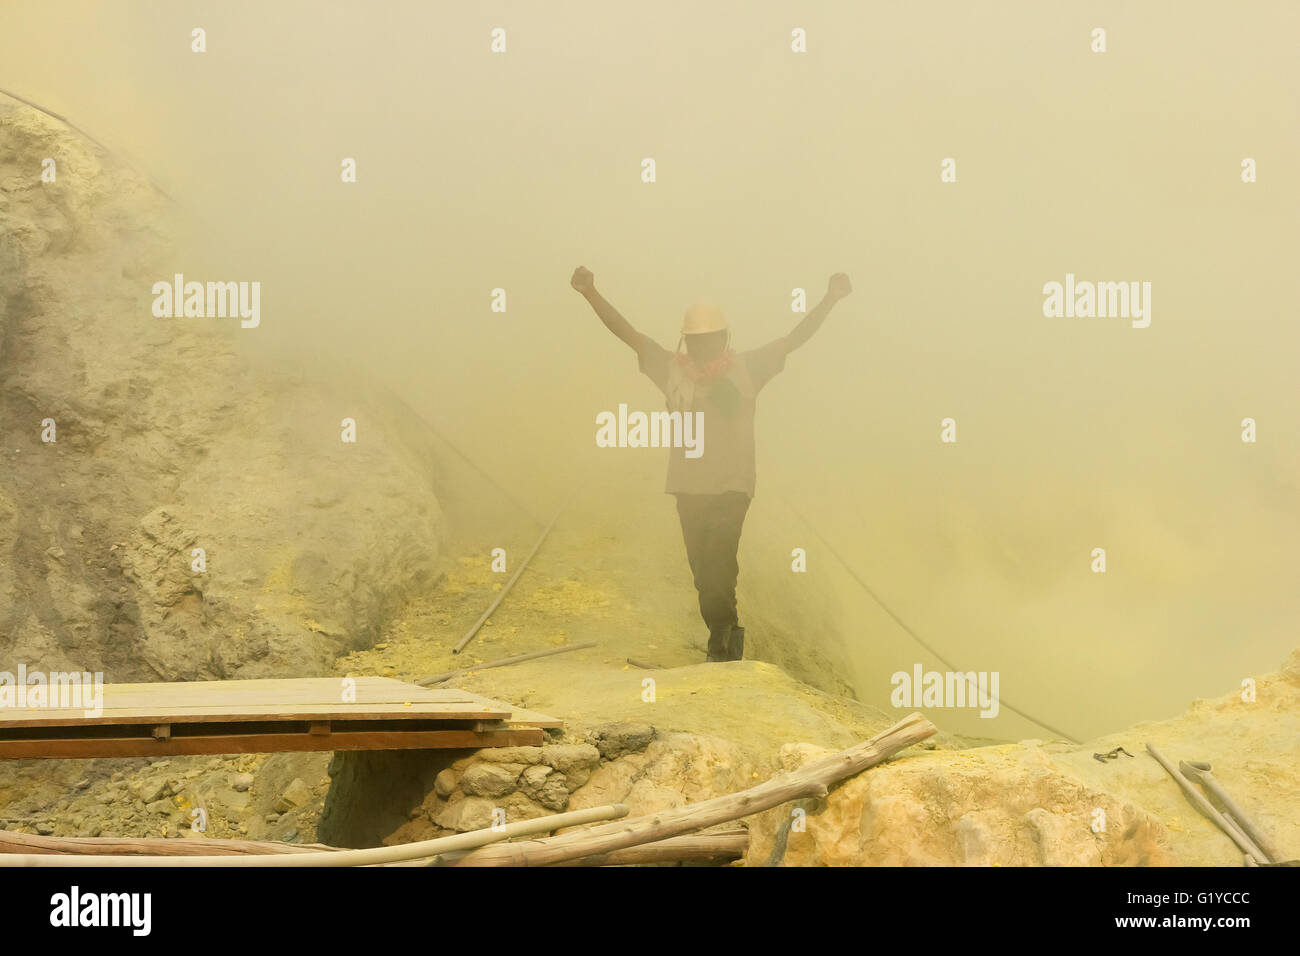 The Sulfur Mining in Ijen Crater, Indonesia. - Stock Image